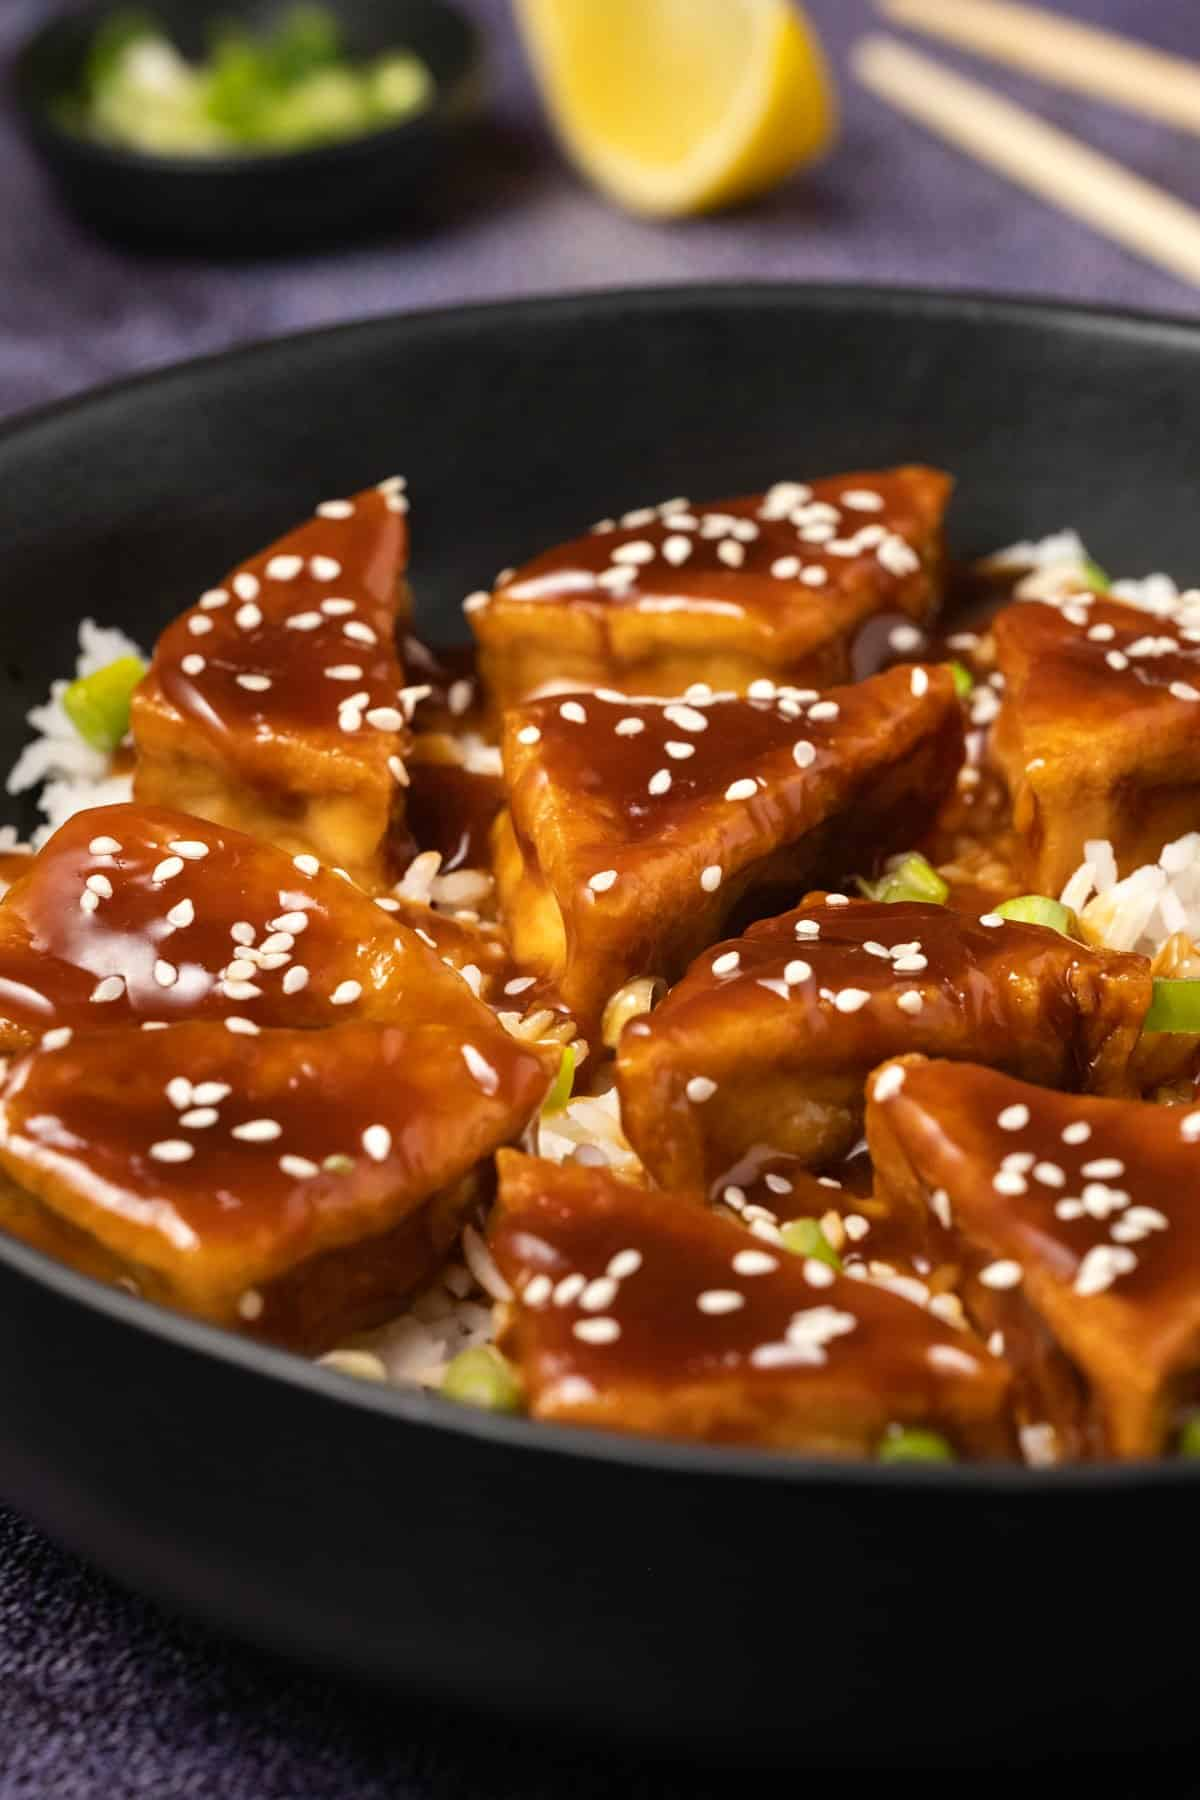 Teriyaki tofu with rice and sesame seeds in a black bowl.